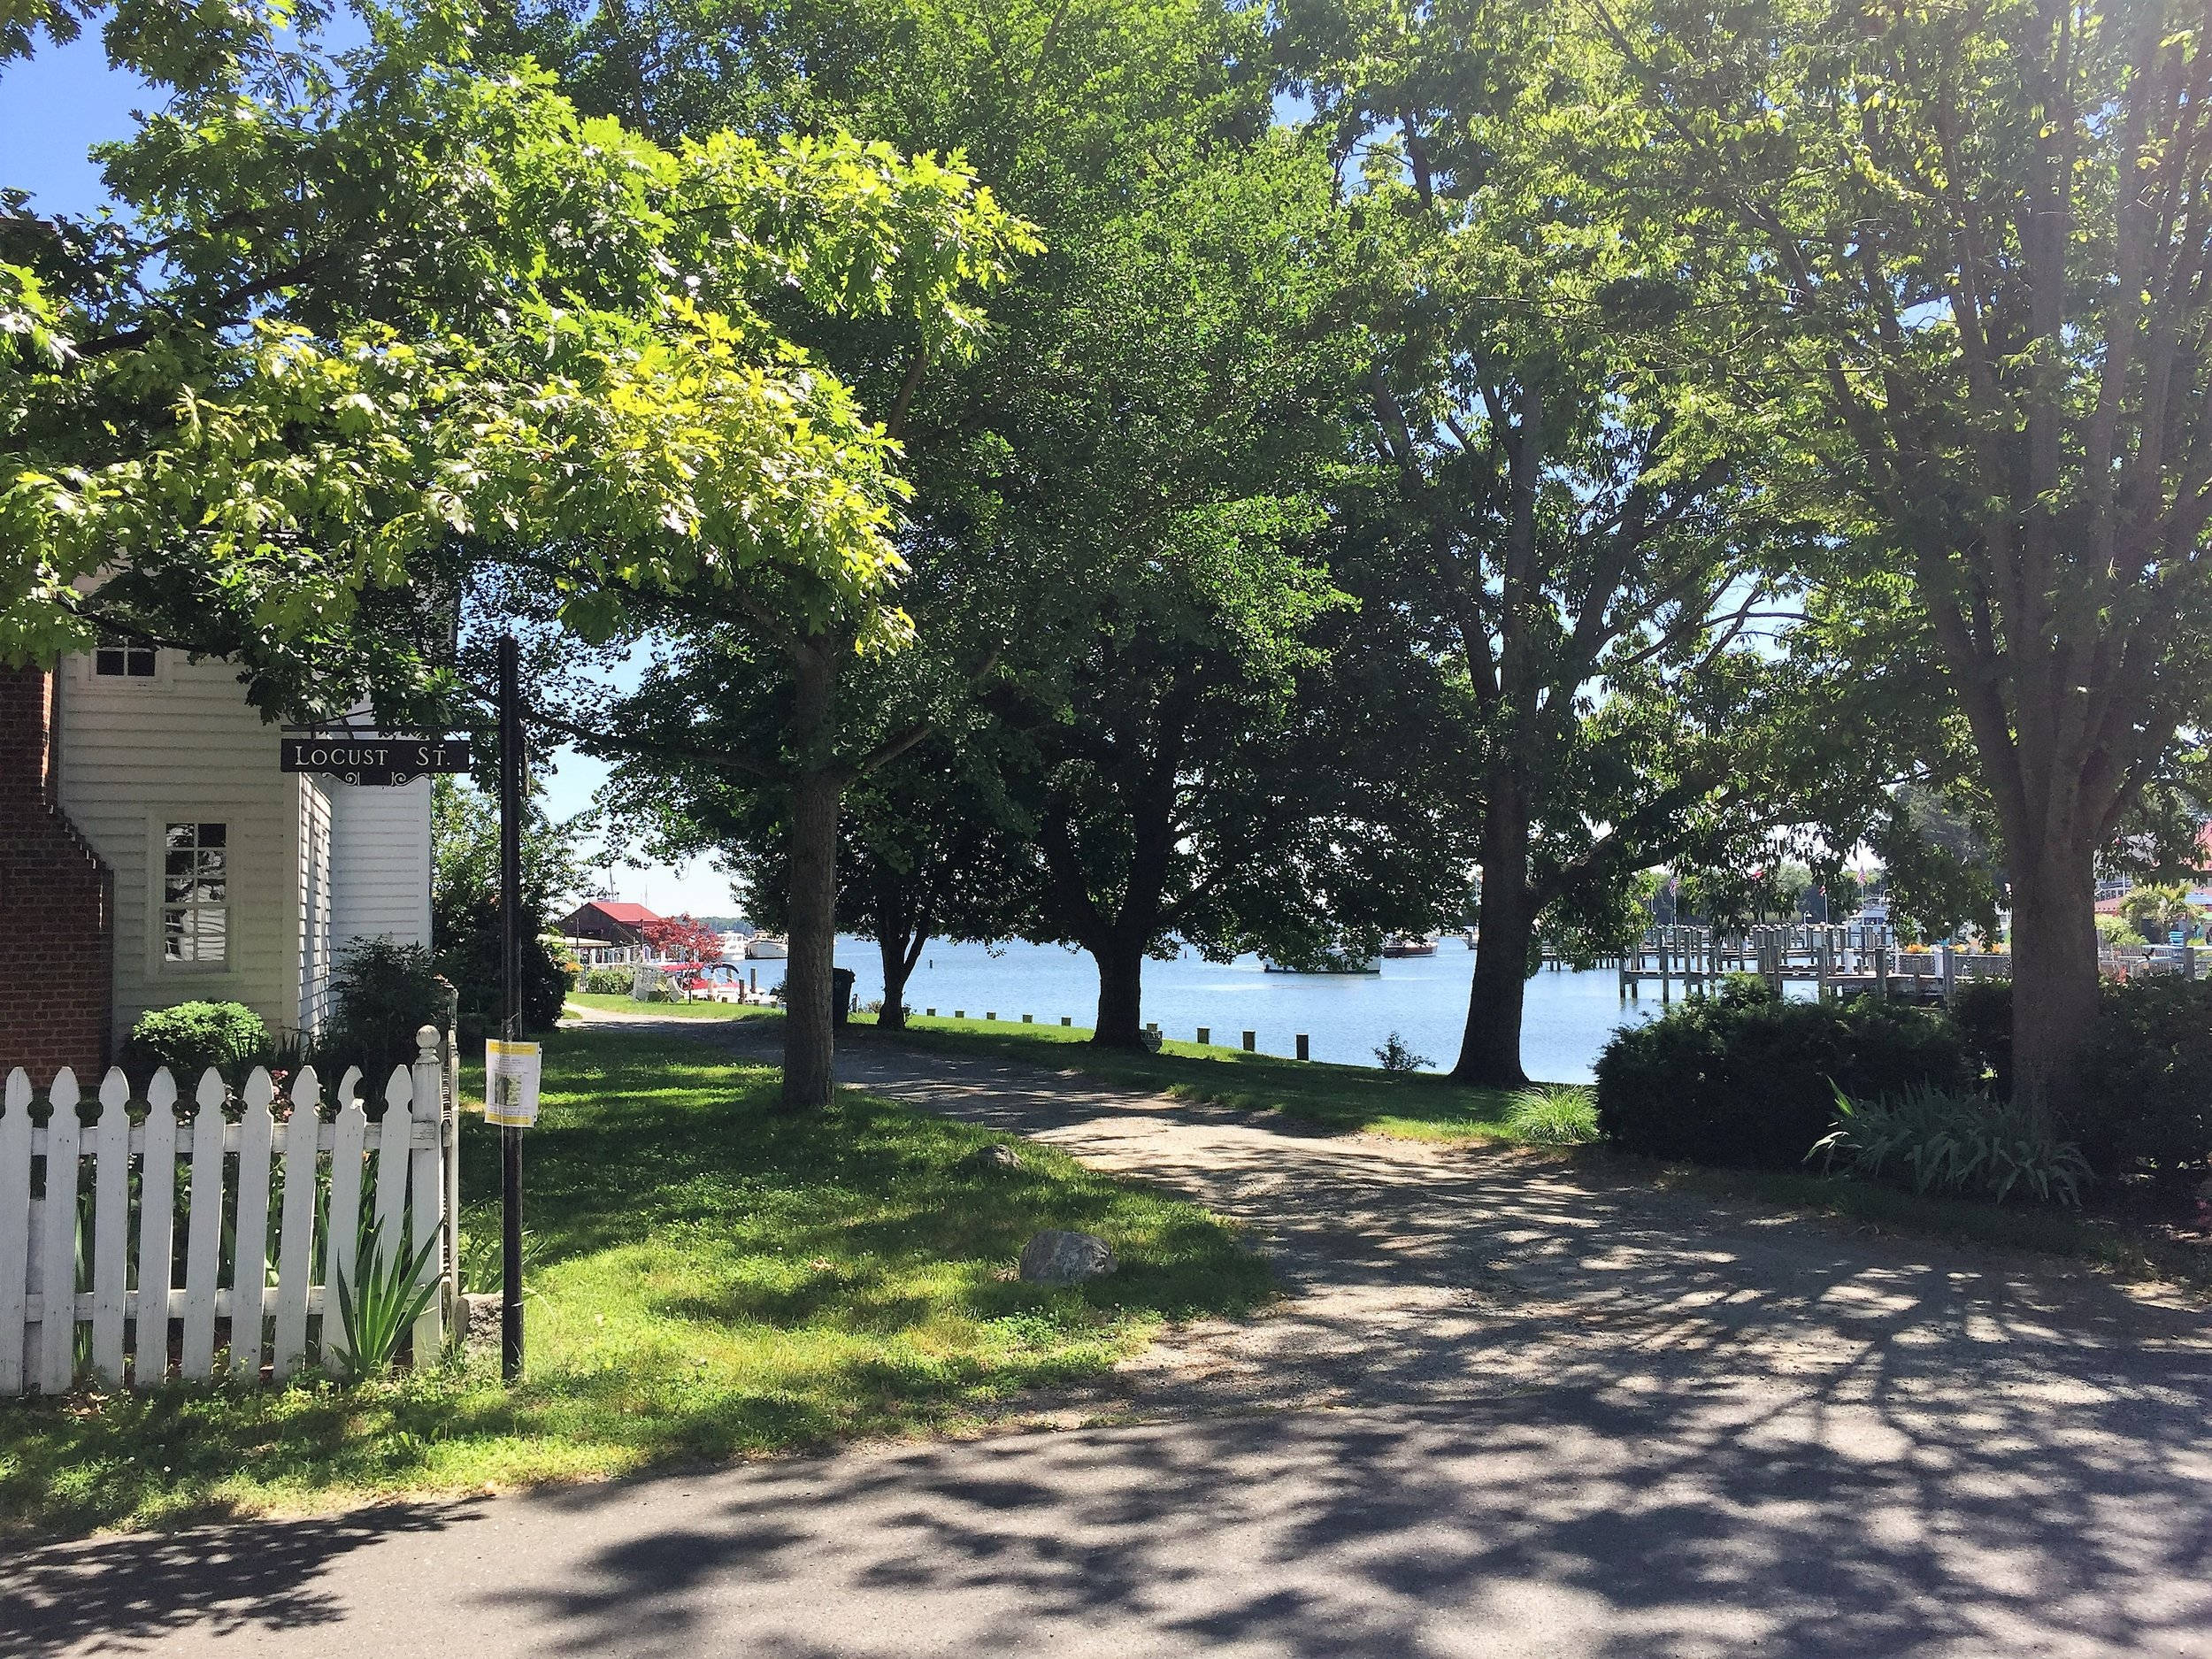 This could be your view from your front porch if you life at the cornier of Locust and Carpenter.